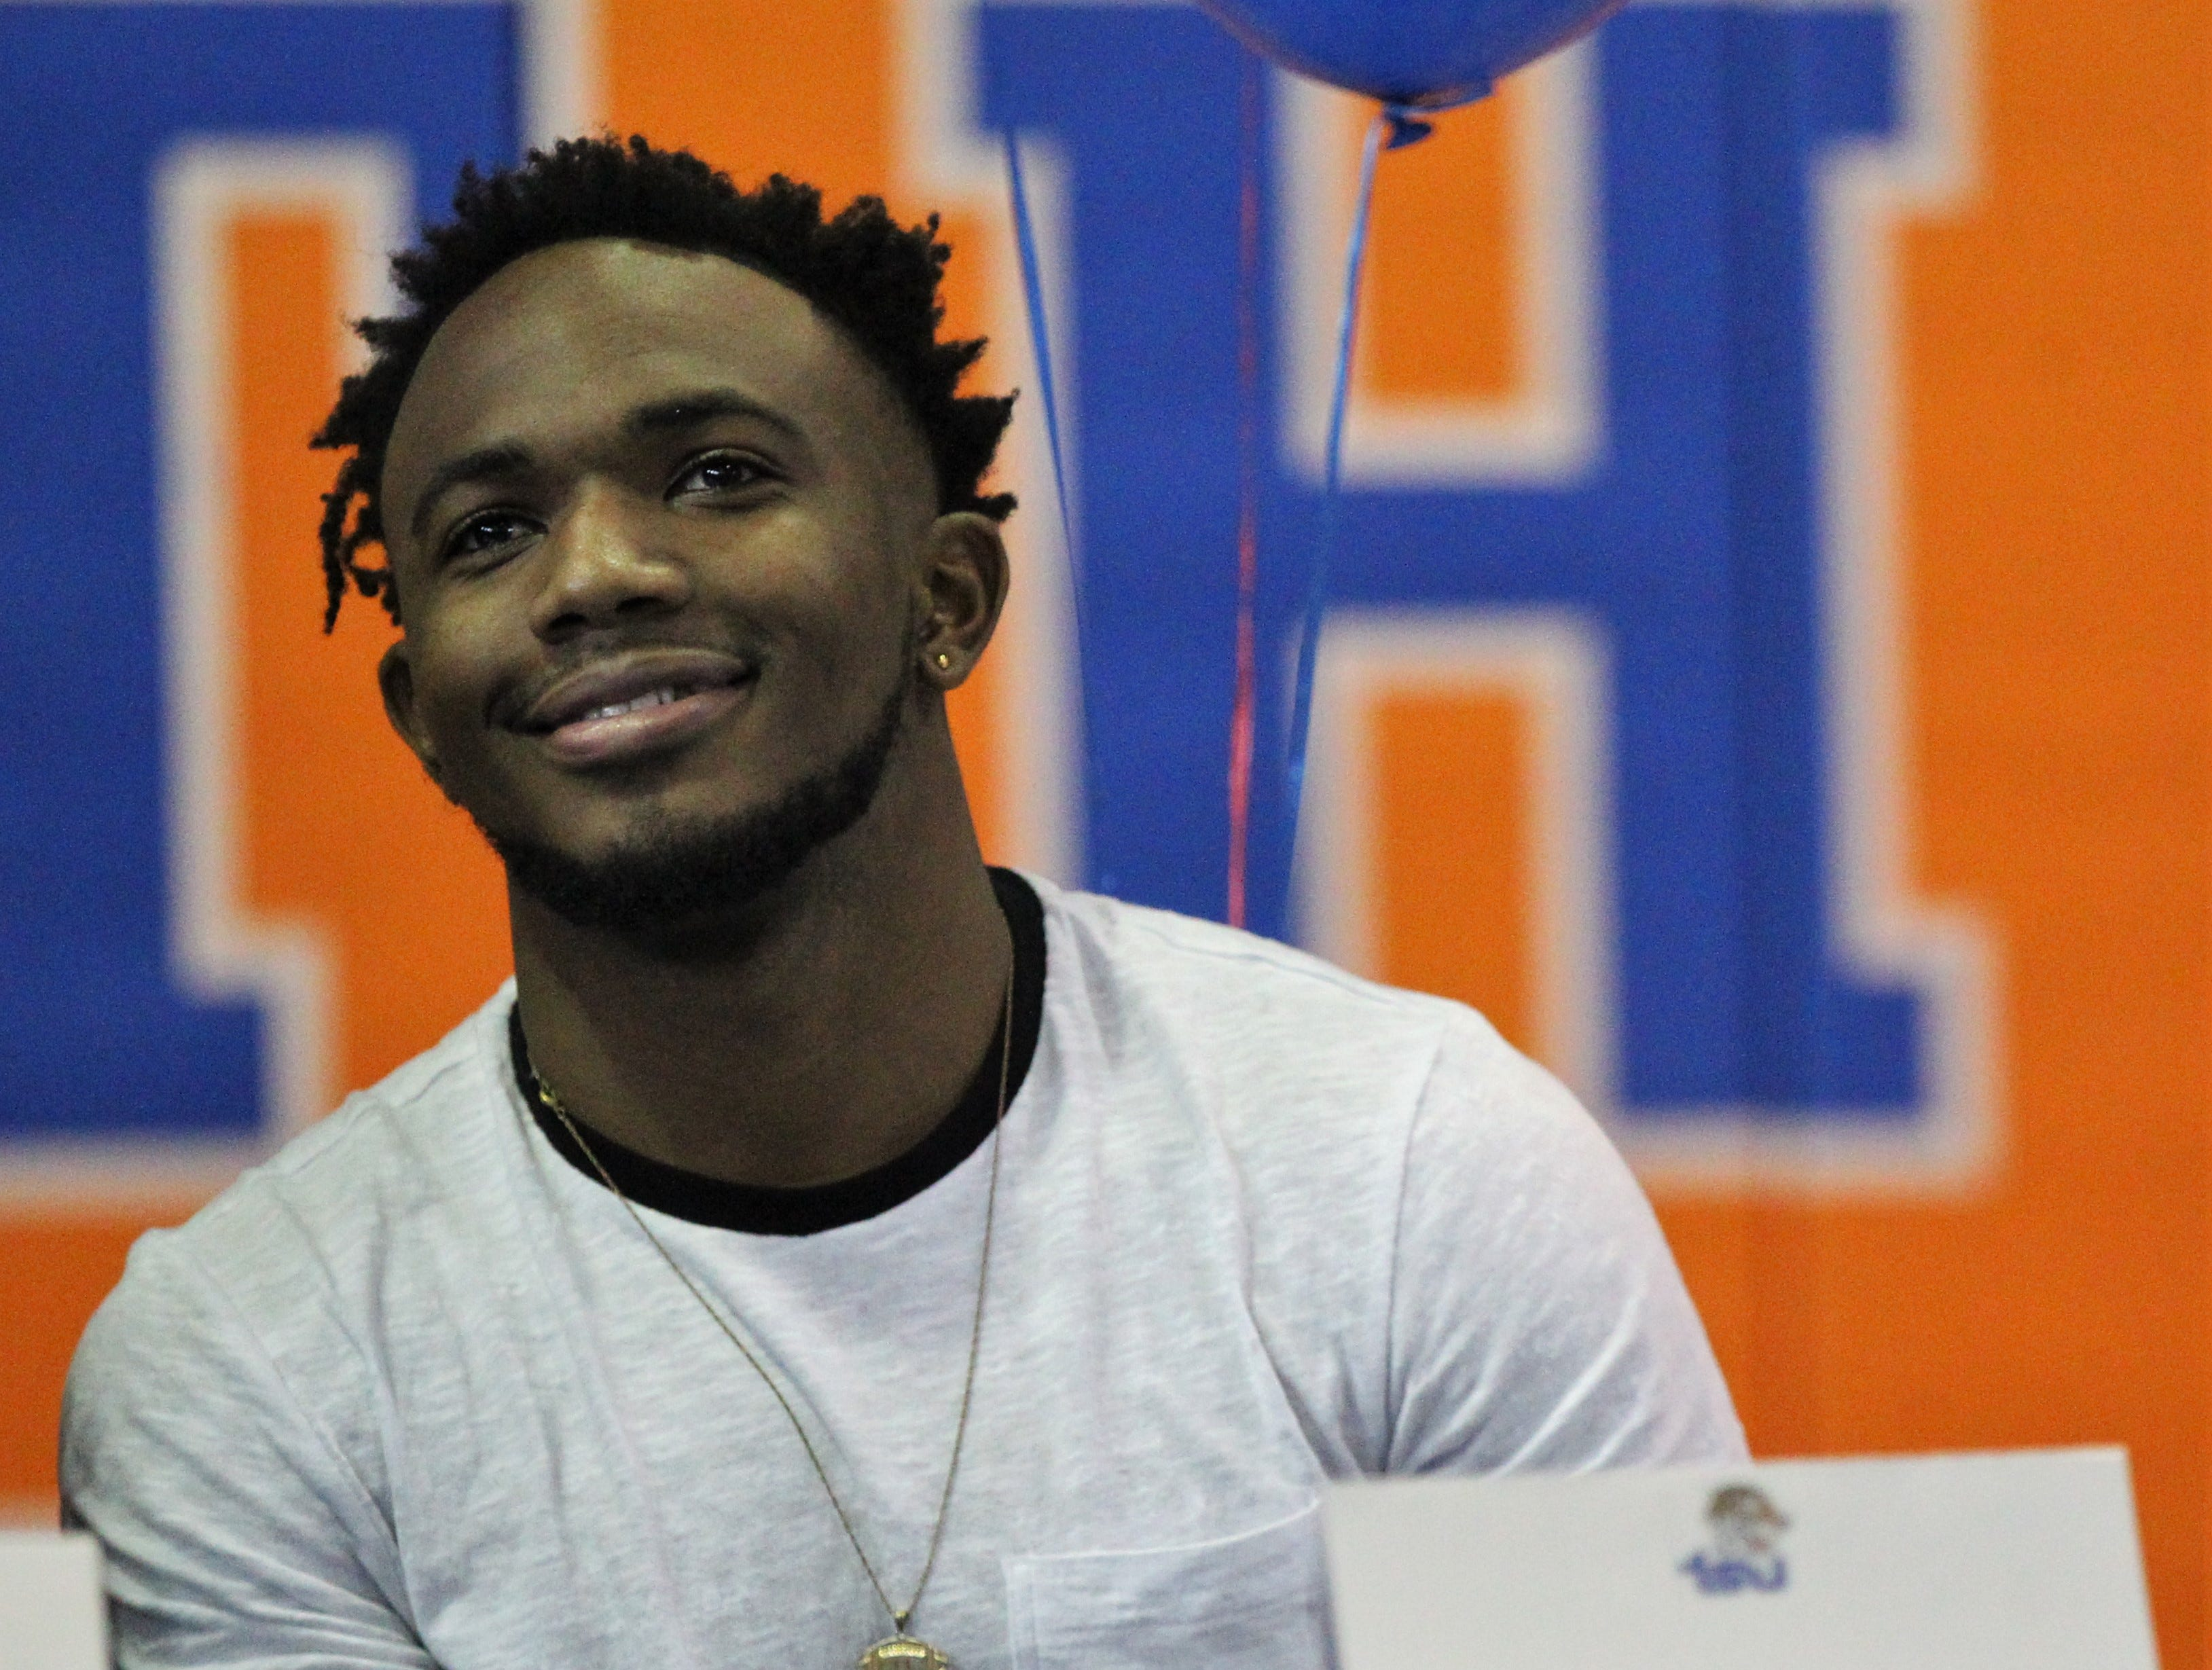 Jefferson County senior receiver Da'Shon Davis waits to sign with Tennessee State during Jefferson County's signing day ceremony on Feb. 13, 2019.